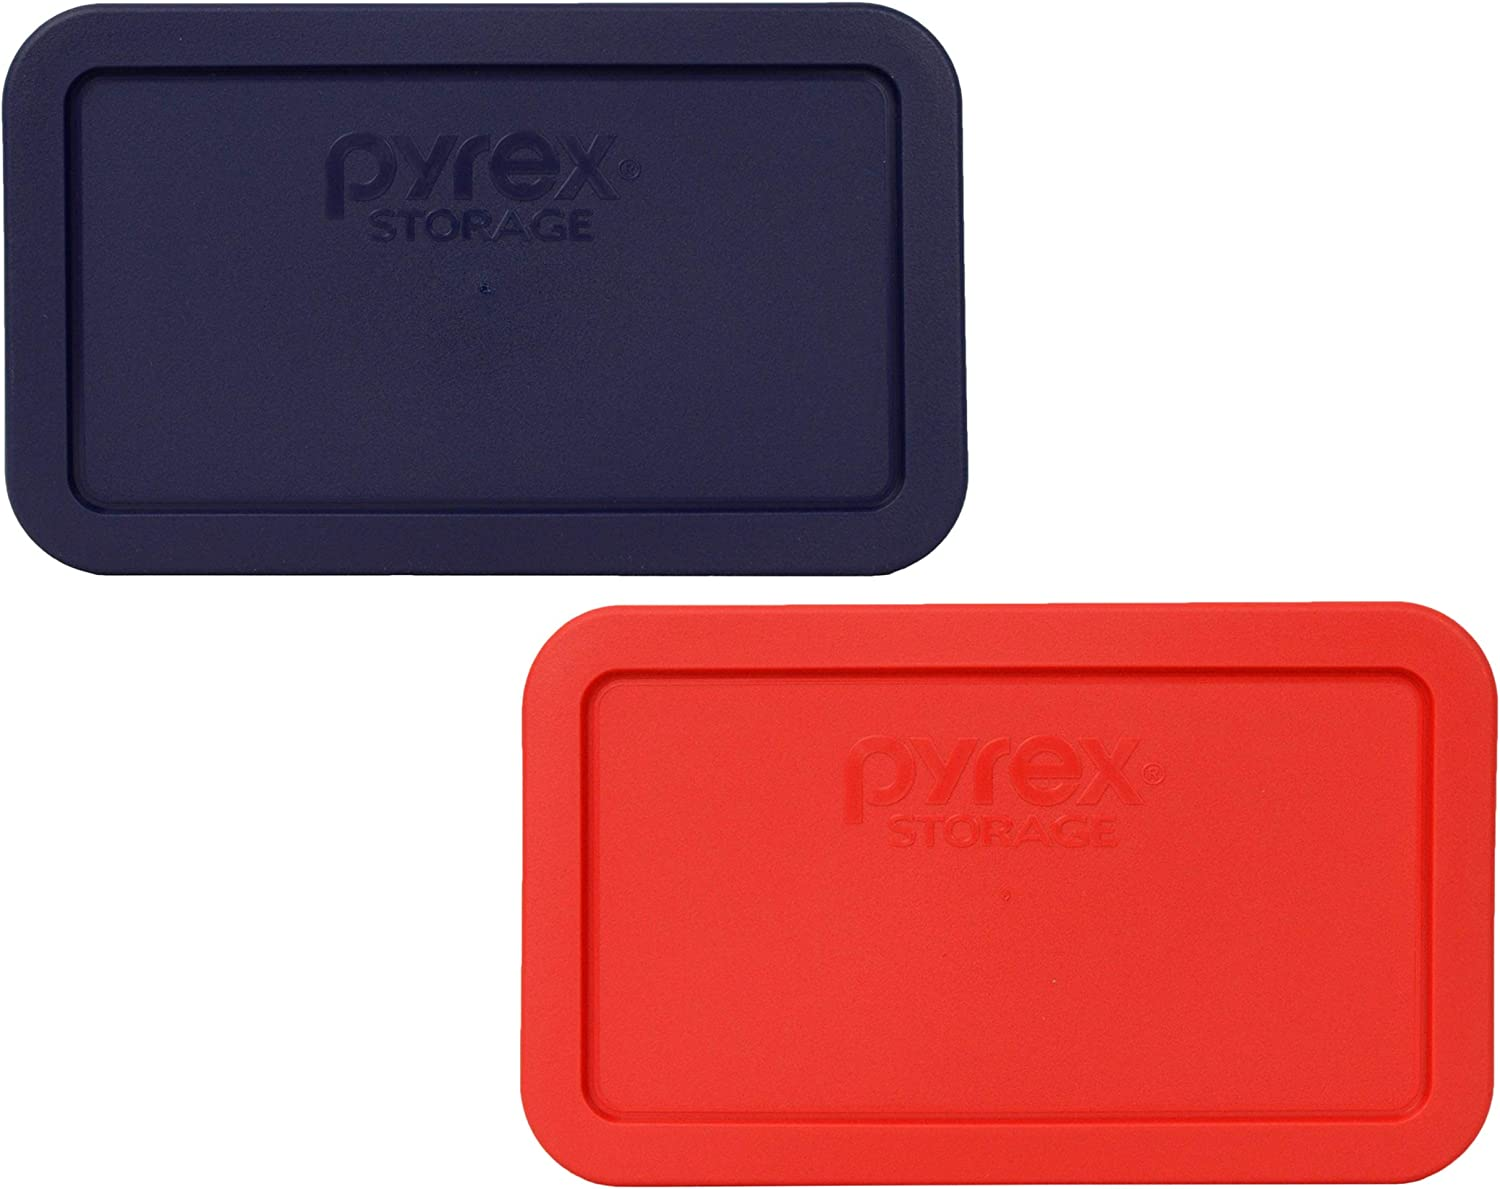 Pyrex 7214-PC (1) Dark Blue and (1) Red 4.8 Cup Rectangular Plastic Lids